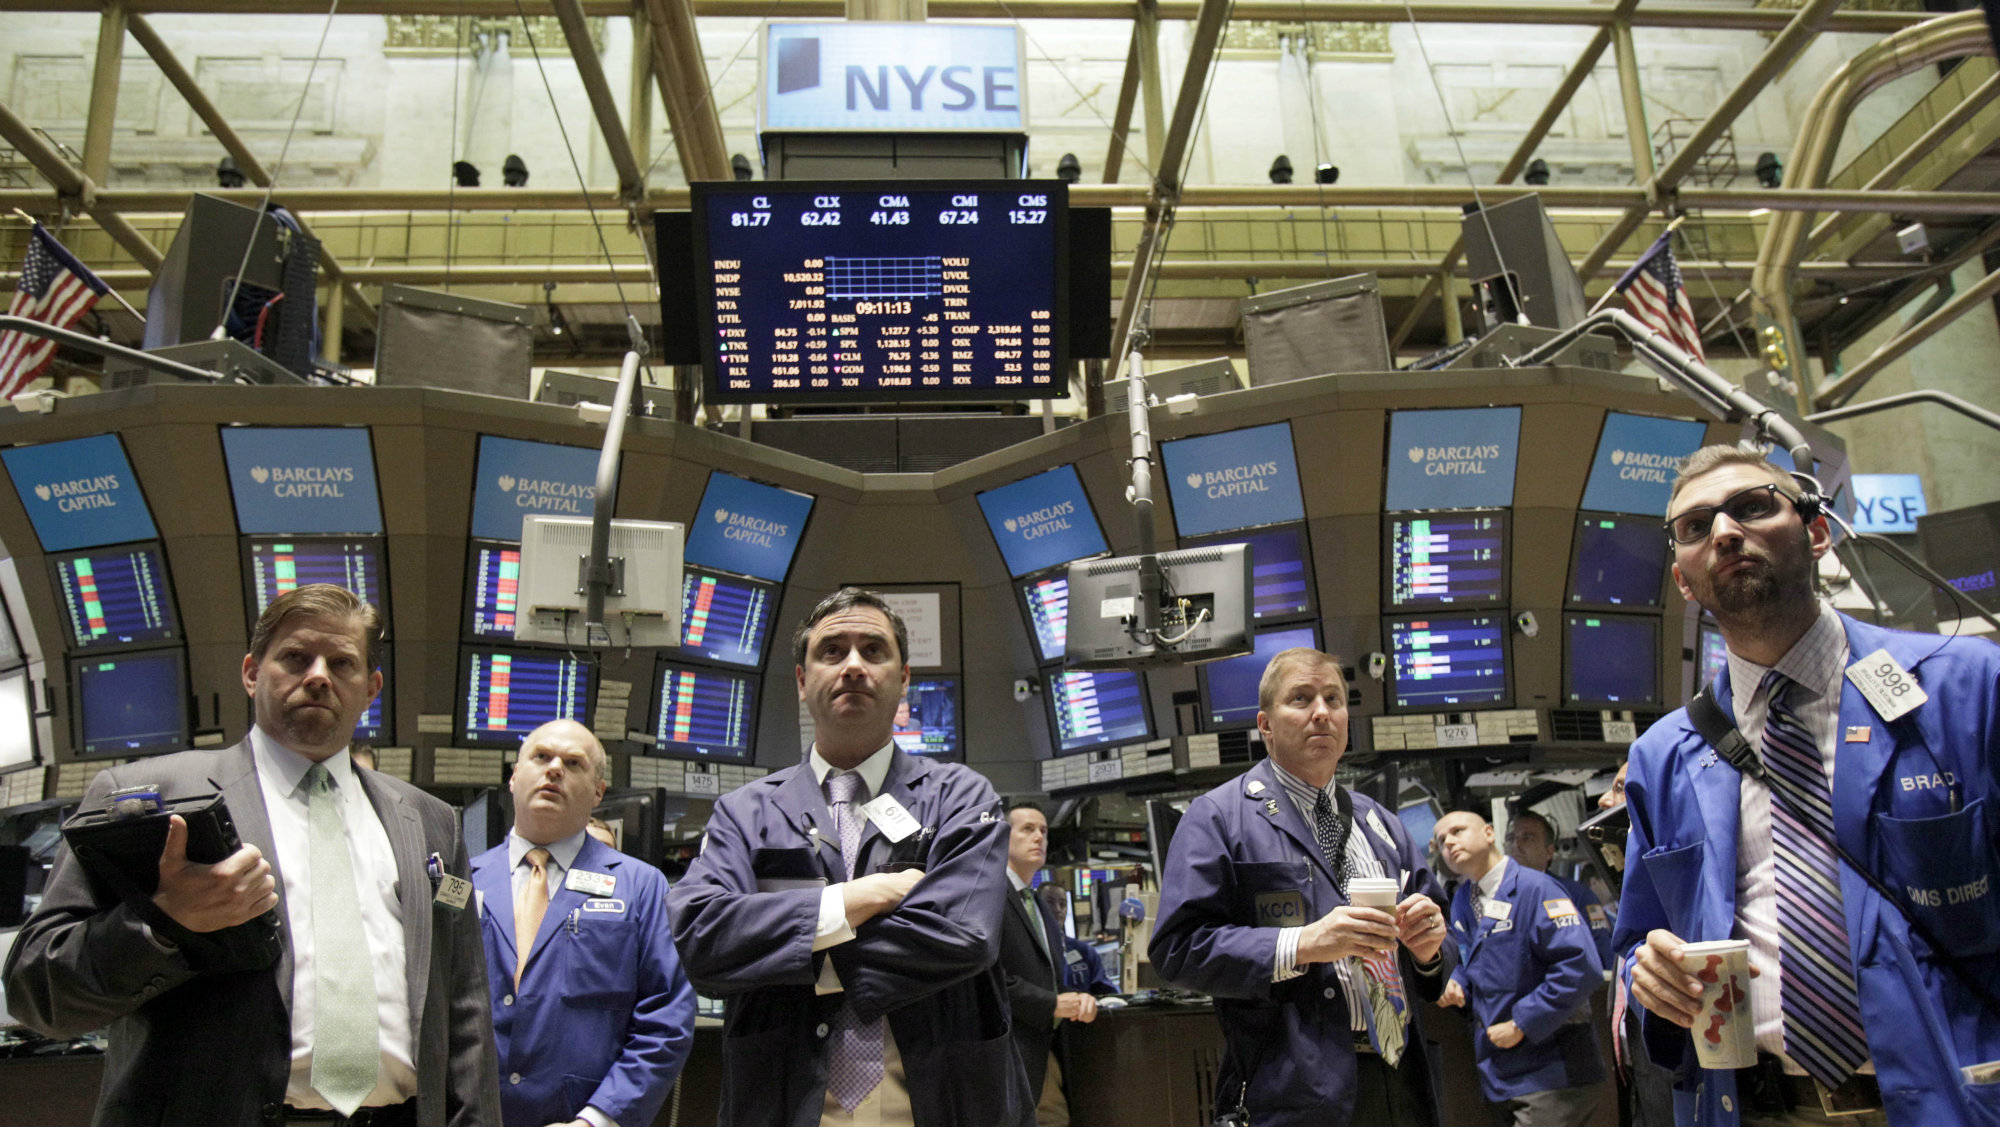 New york stock exchange invested into bitcoin